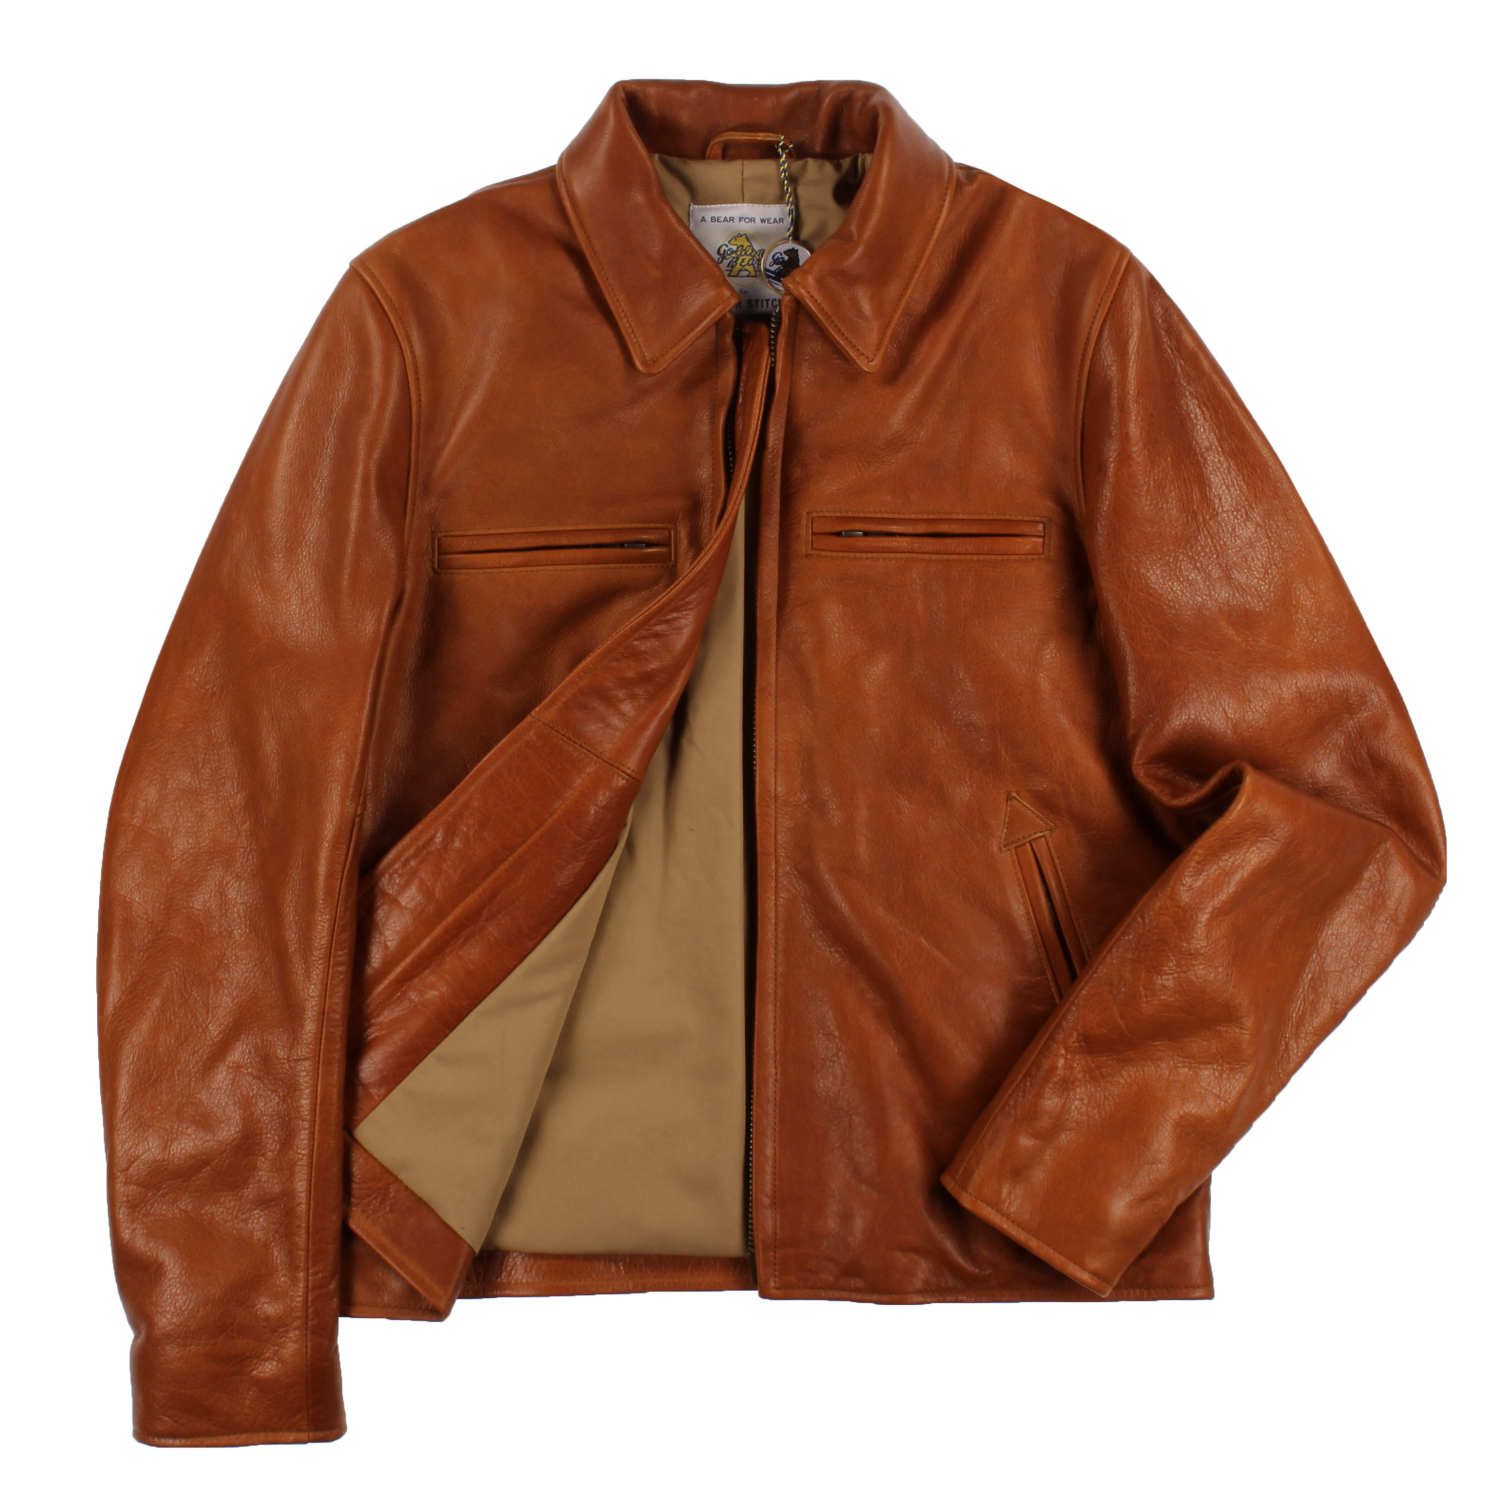 The Moto Jacket